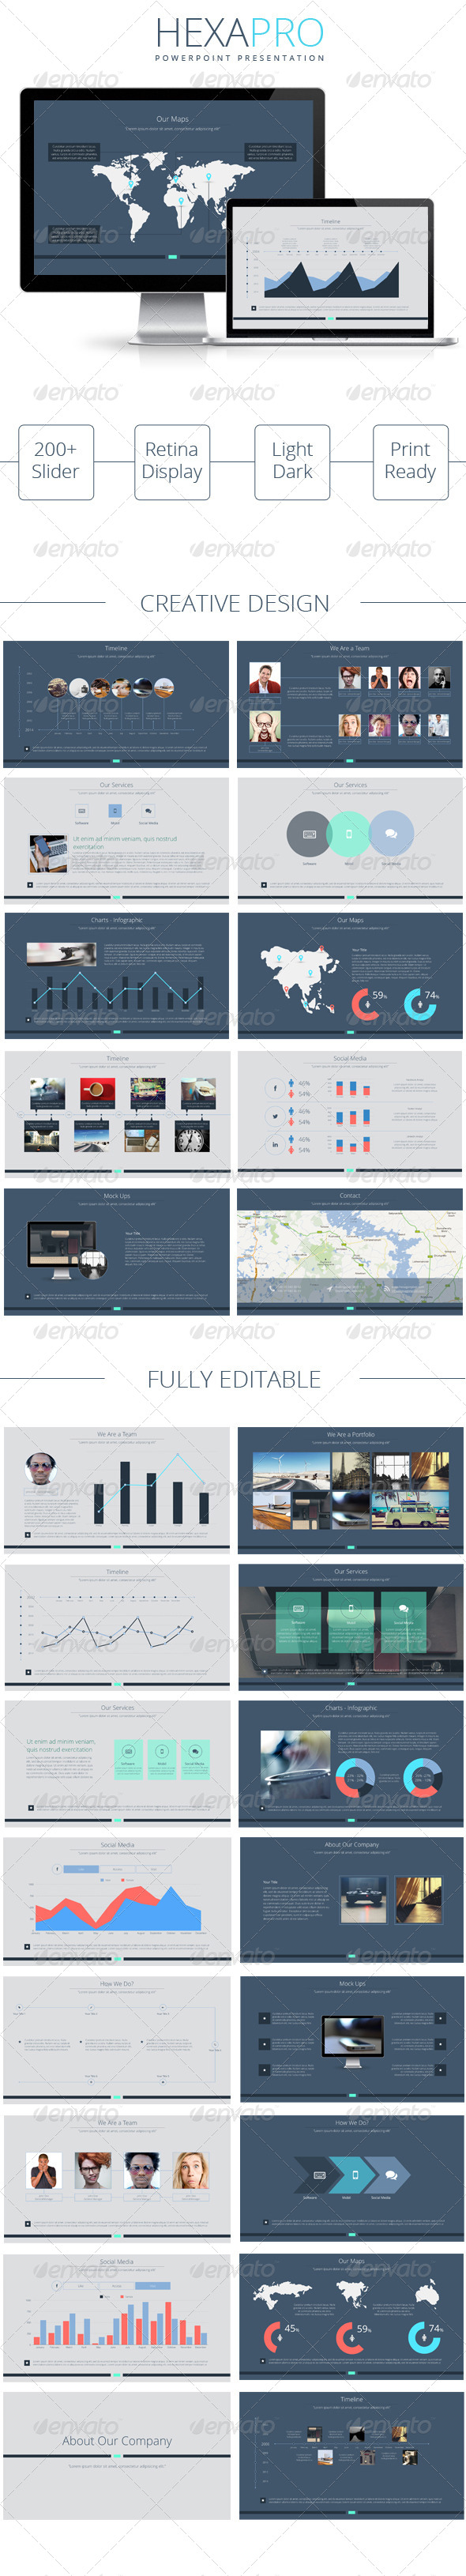 GraphicRiver HexaPro Creative PowerPoint Presentation 7812824